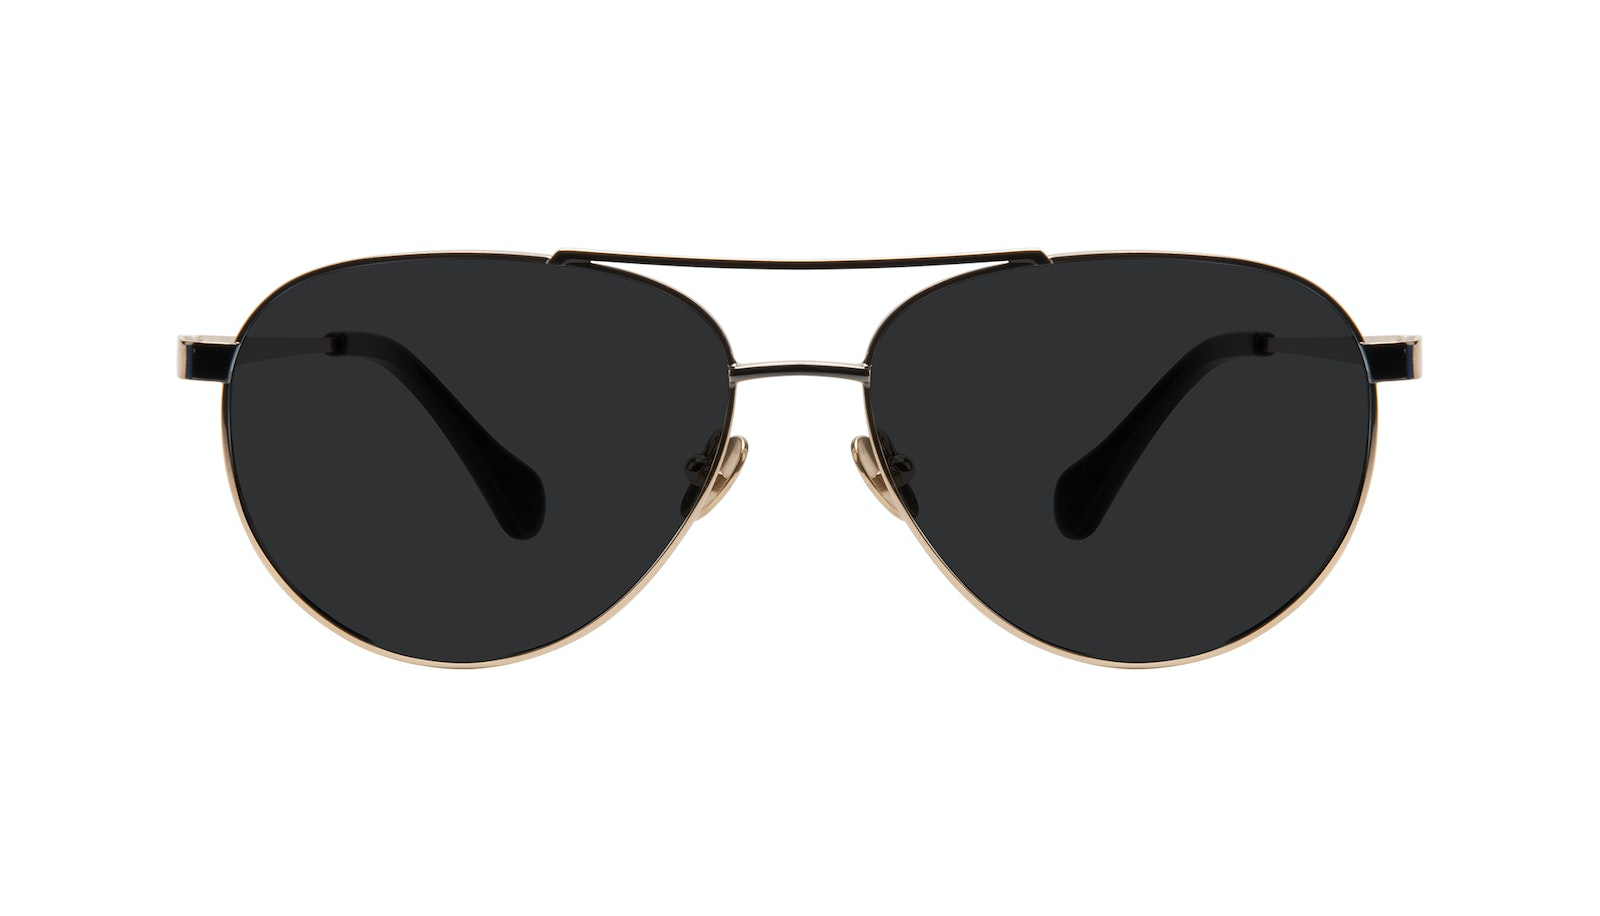 Affordable Fashion Glasses Aviator Sunglasses Women Boyfriend Deep Gold